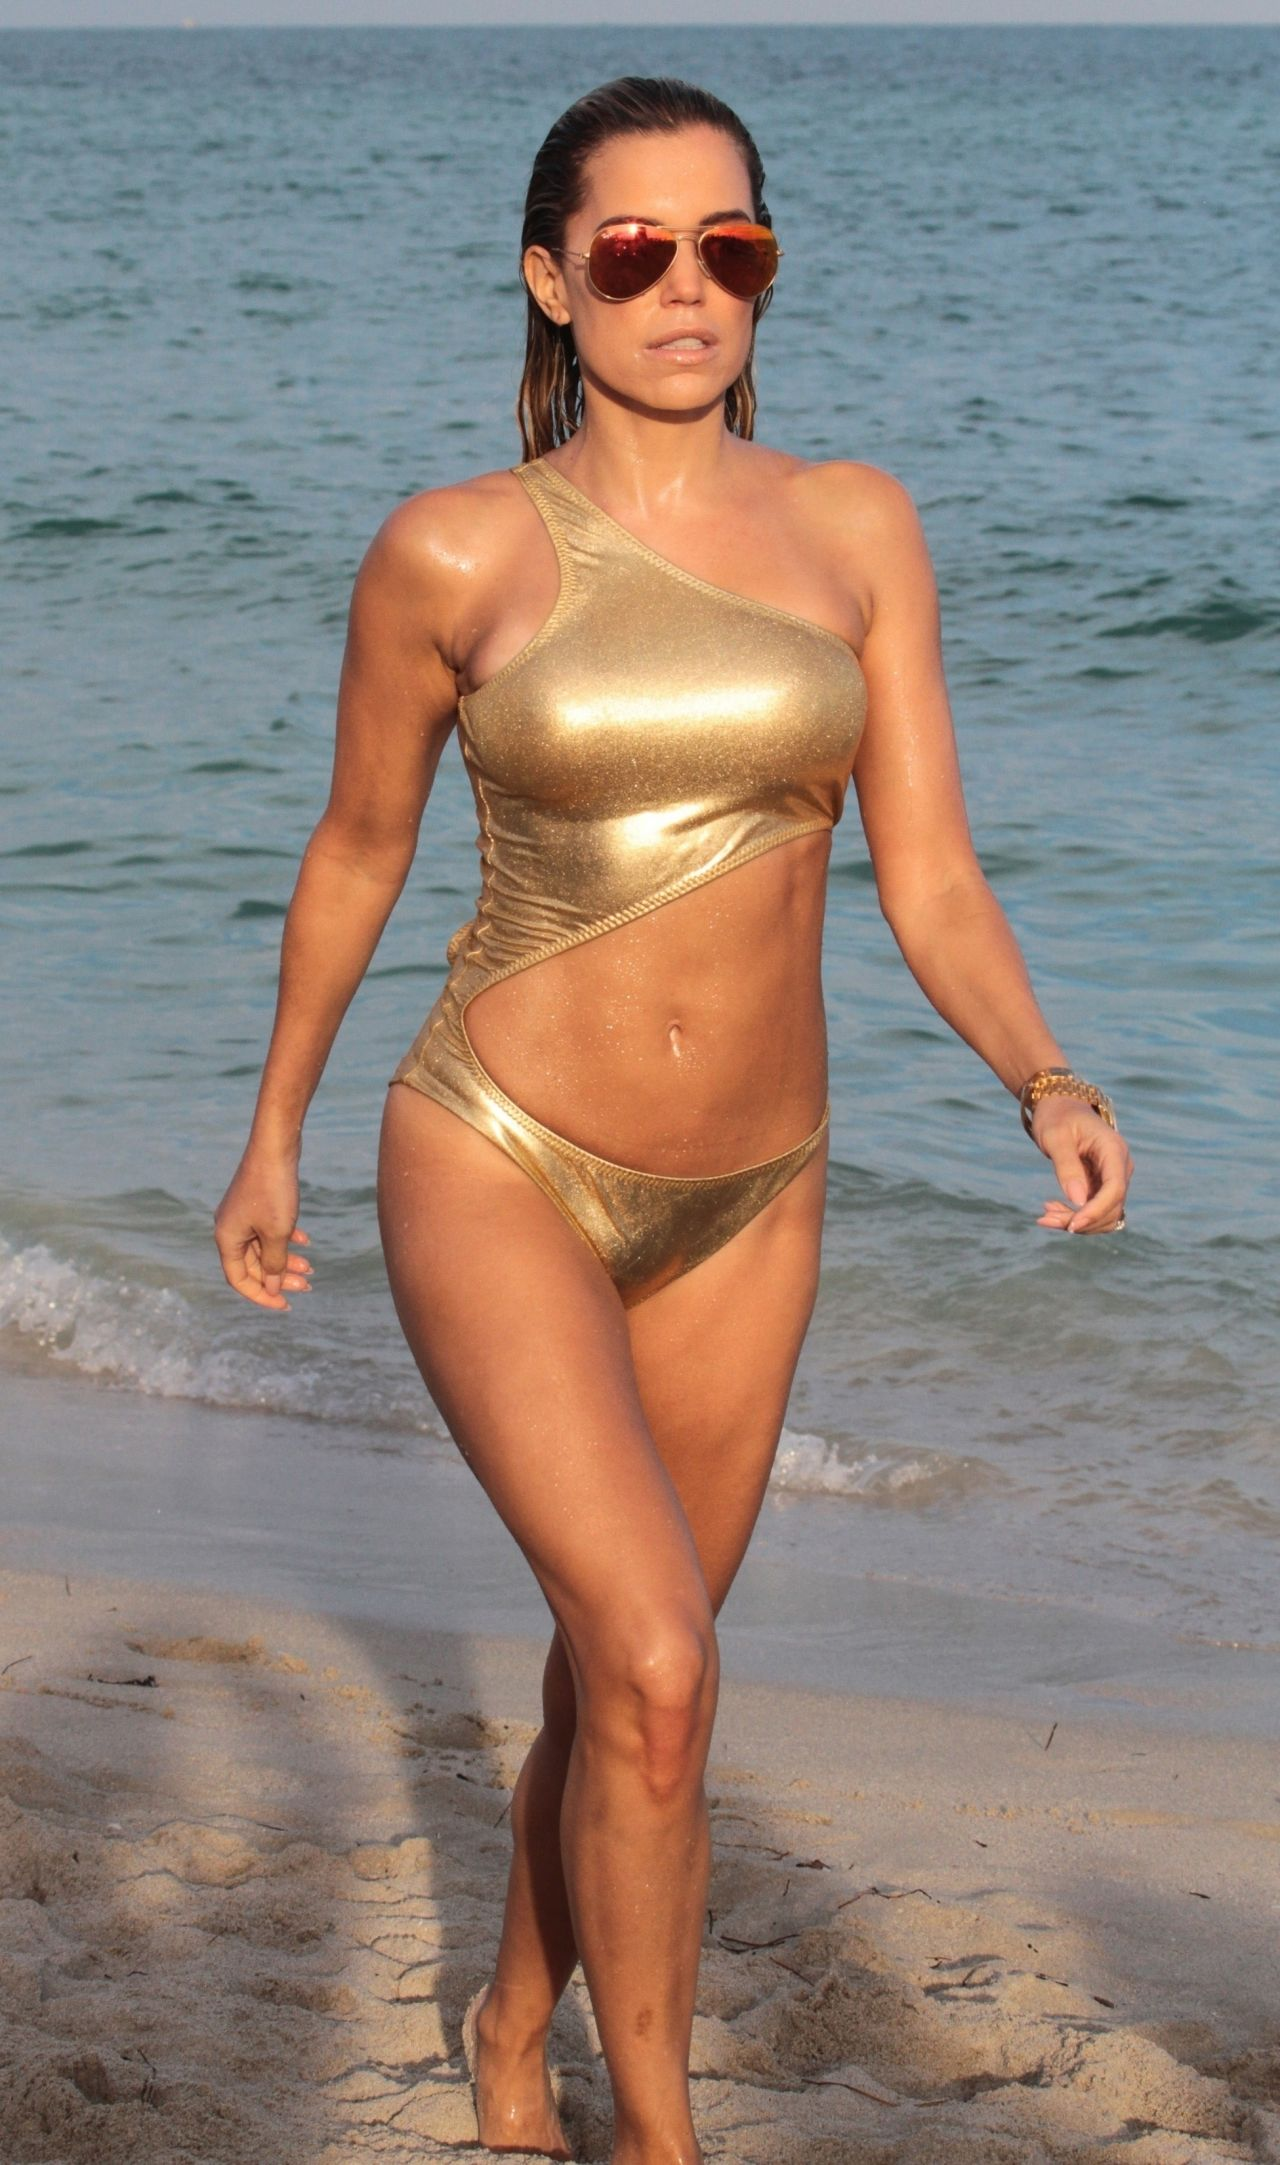 Sylvie Meis Hot In A Gold Bikini On The Beach In Miami-1831